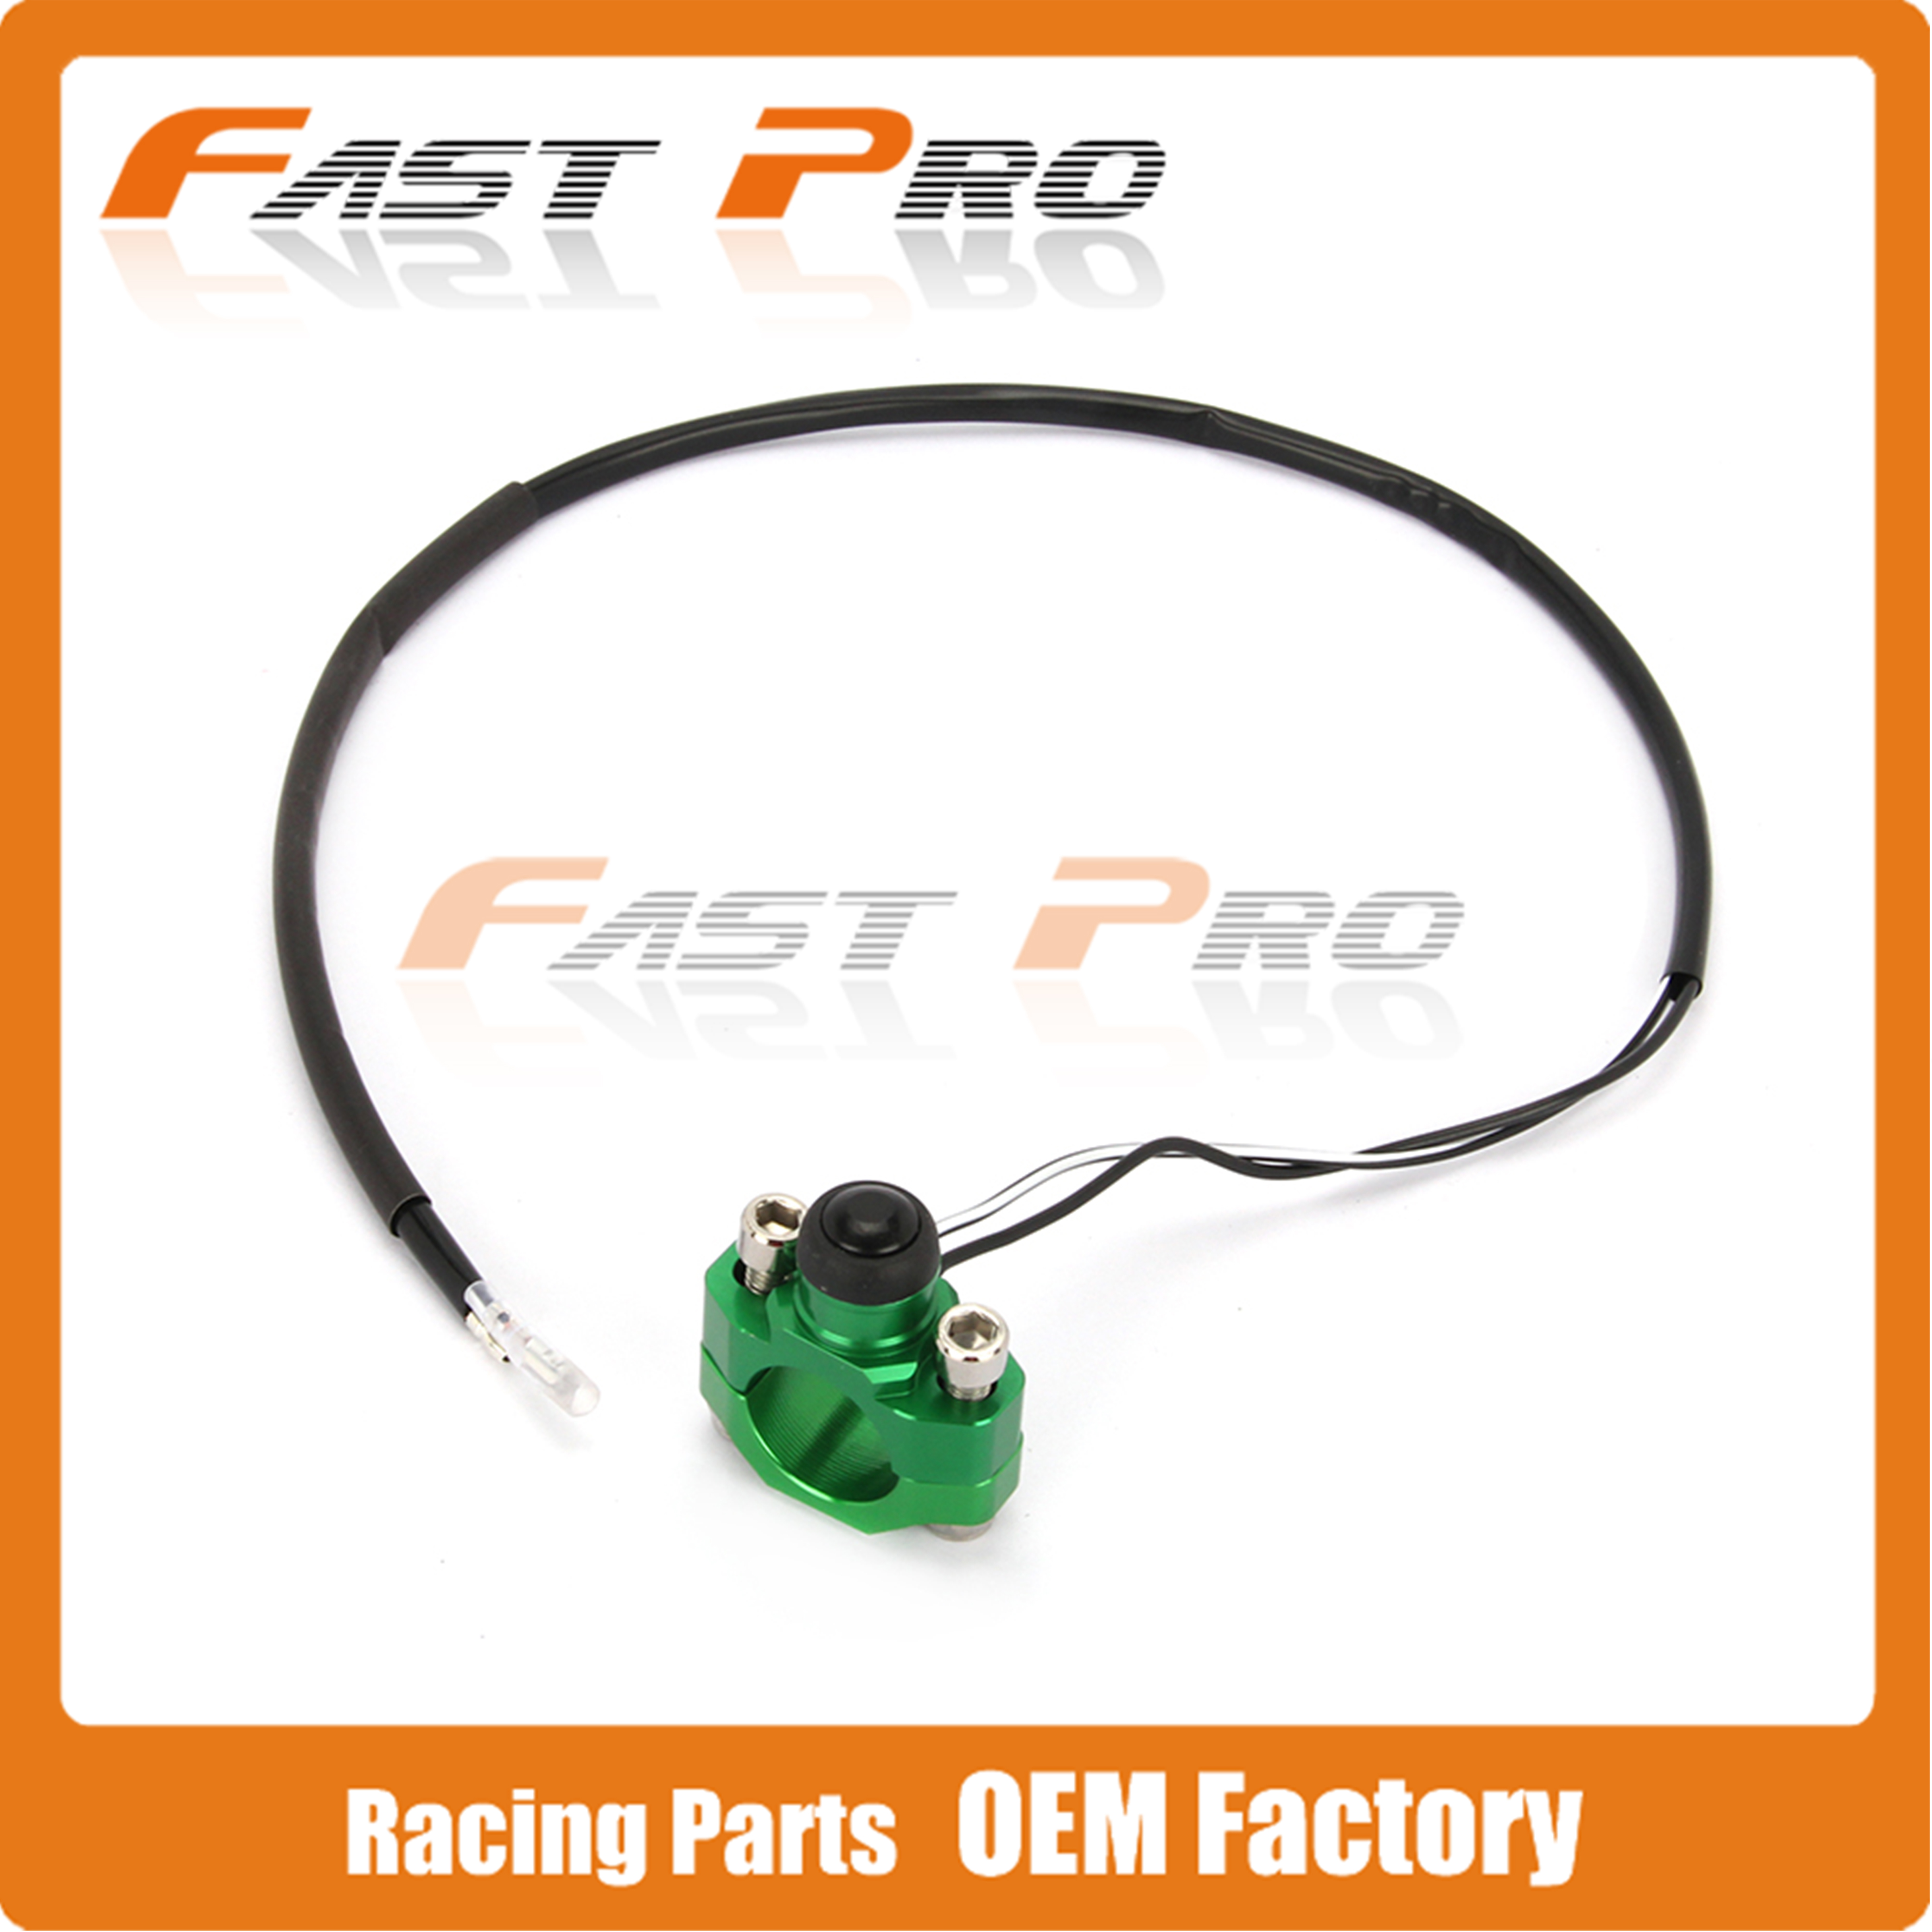 Motorcycle CNC Universal Engine Stop Start Kill Switch With Base For KAWASAKI KX500 KX250F KX450F KLX250 KLX450R KLX150 KLX250